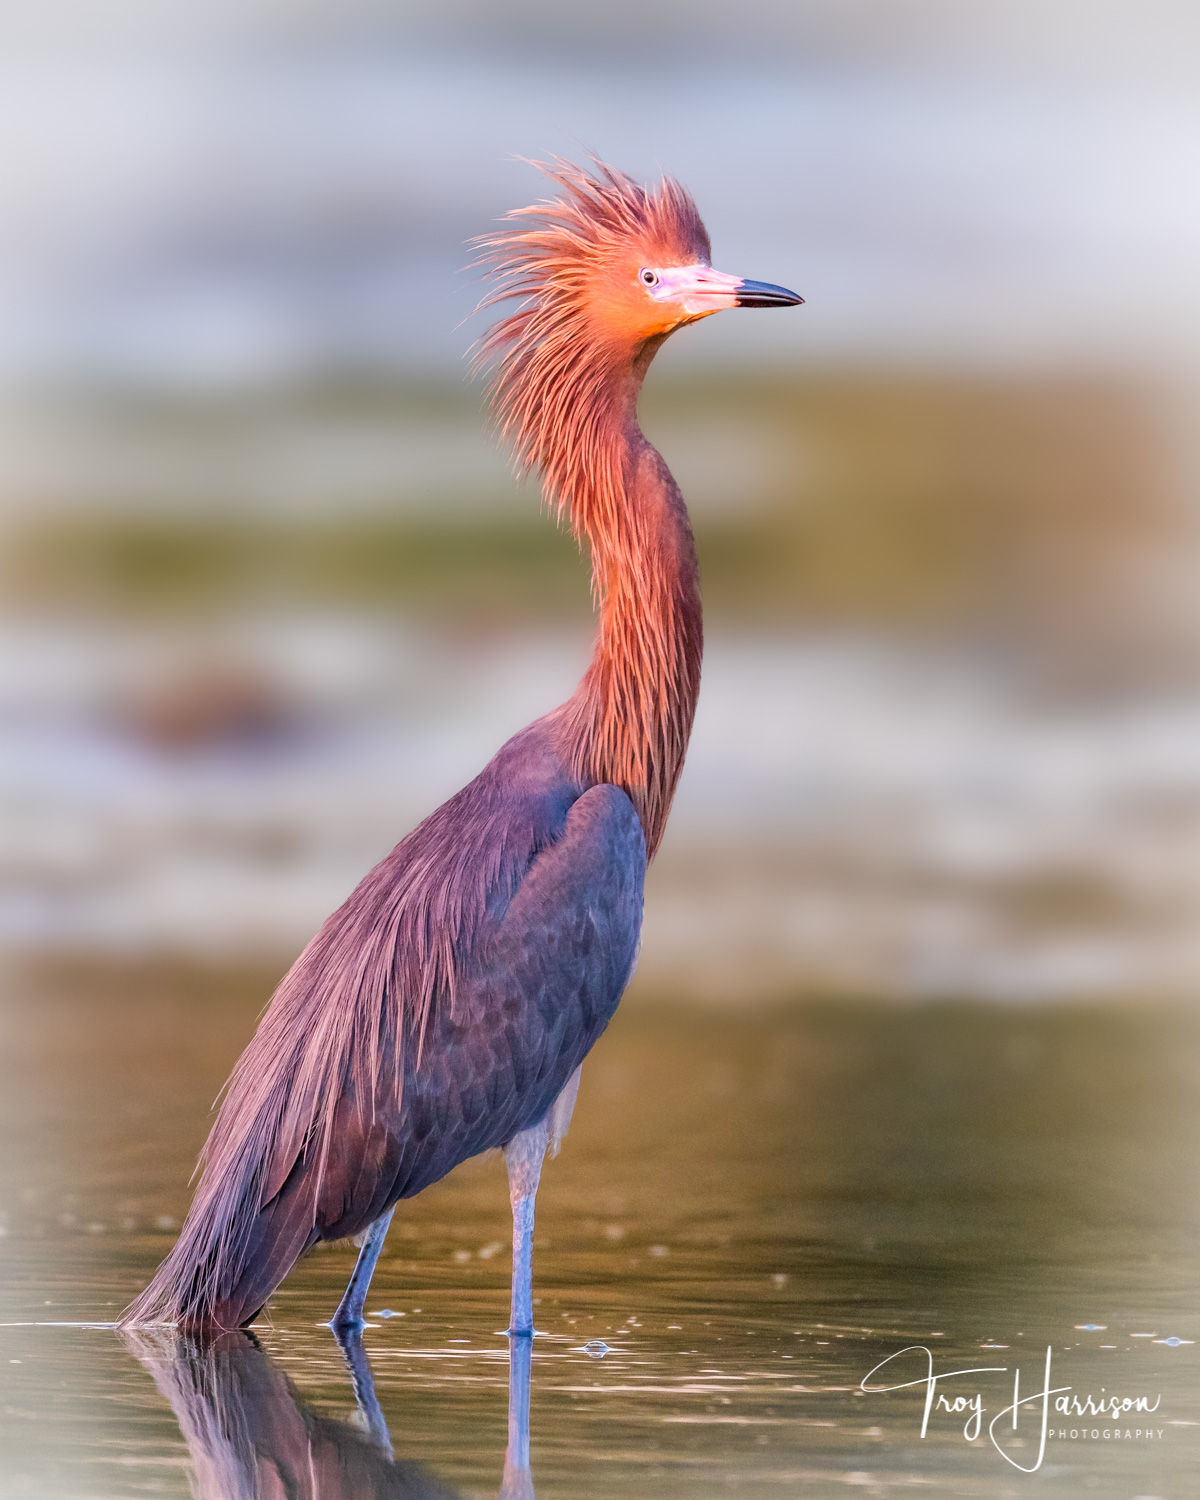 1 - Reddish Egret, Everglades, March 2019, img 1852.jpg